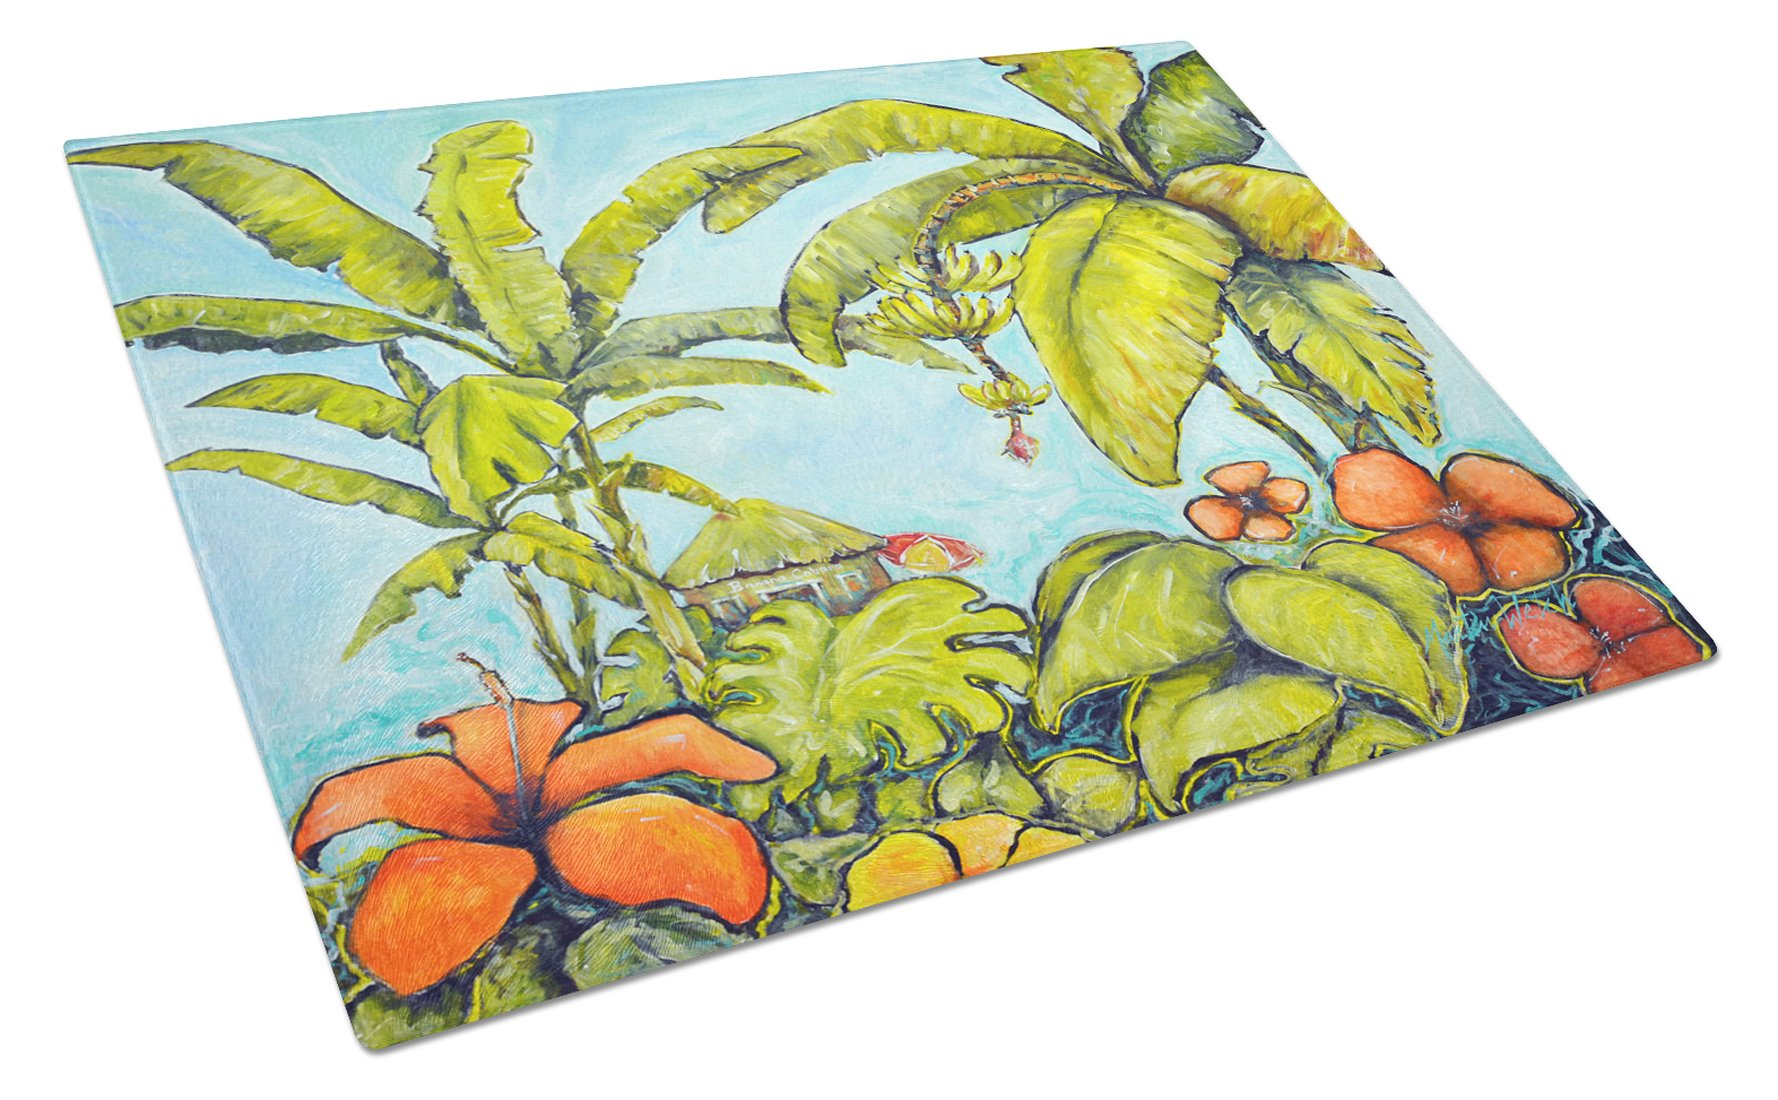 Banana Cabana Glass Cutting Board Large MW1268LCB by Caroline's Treasures